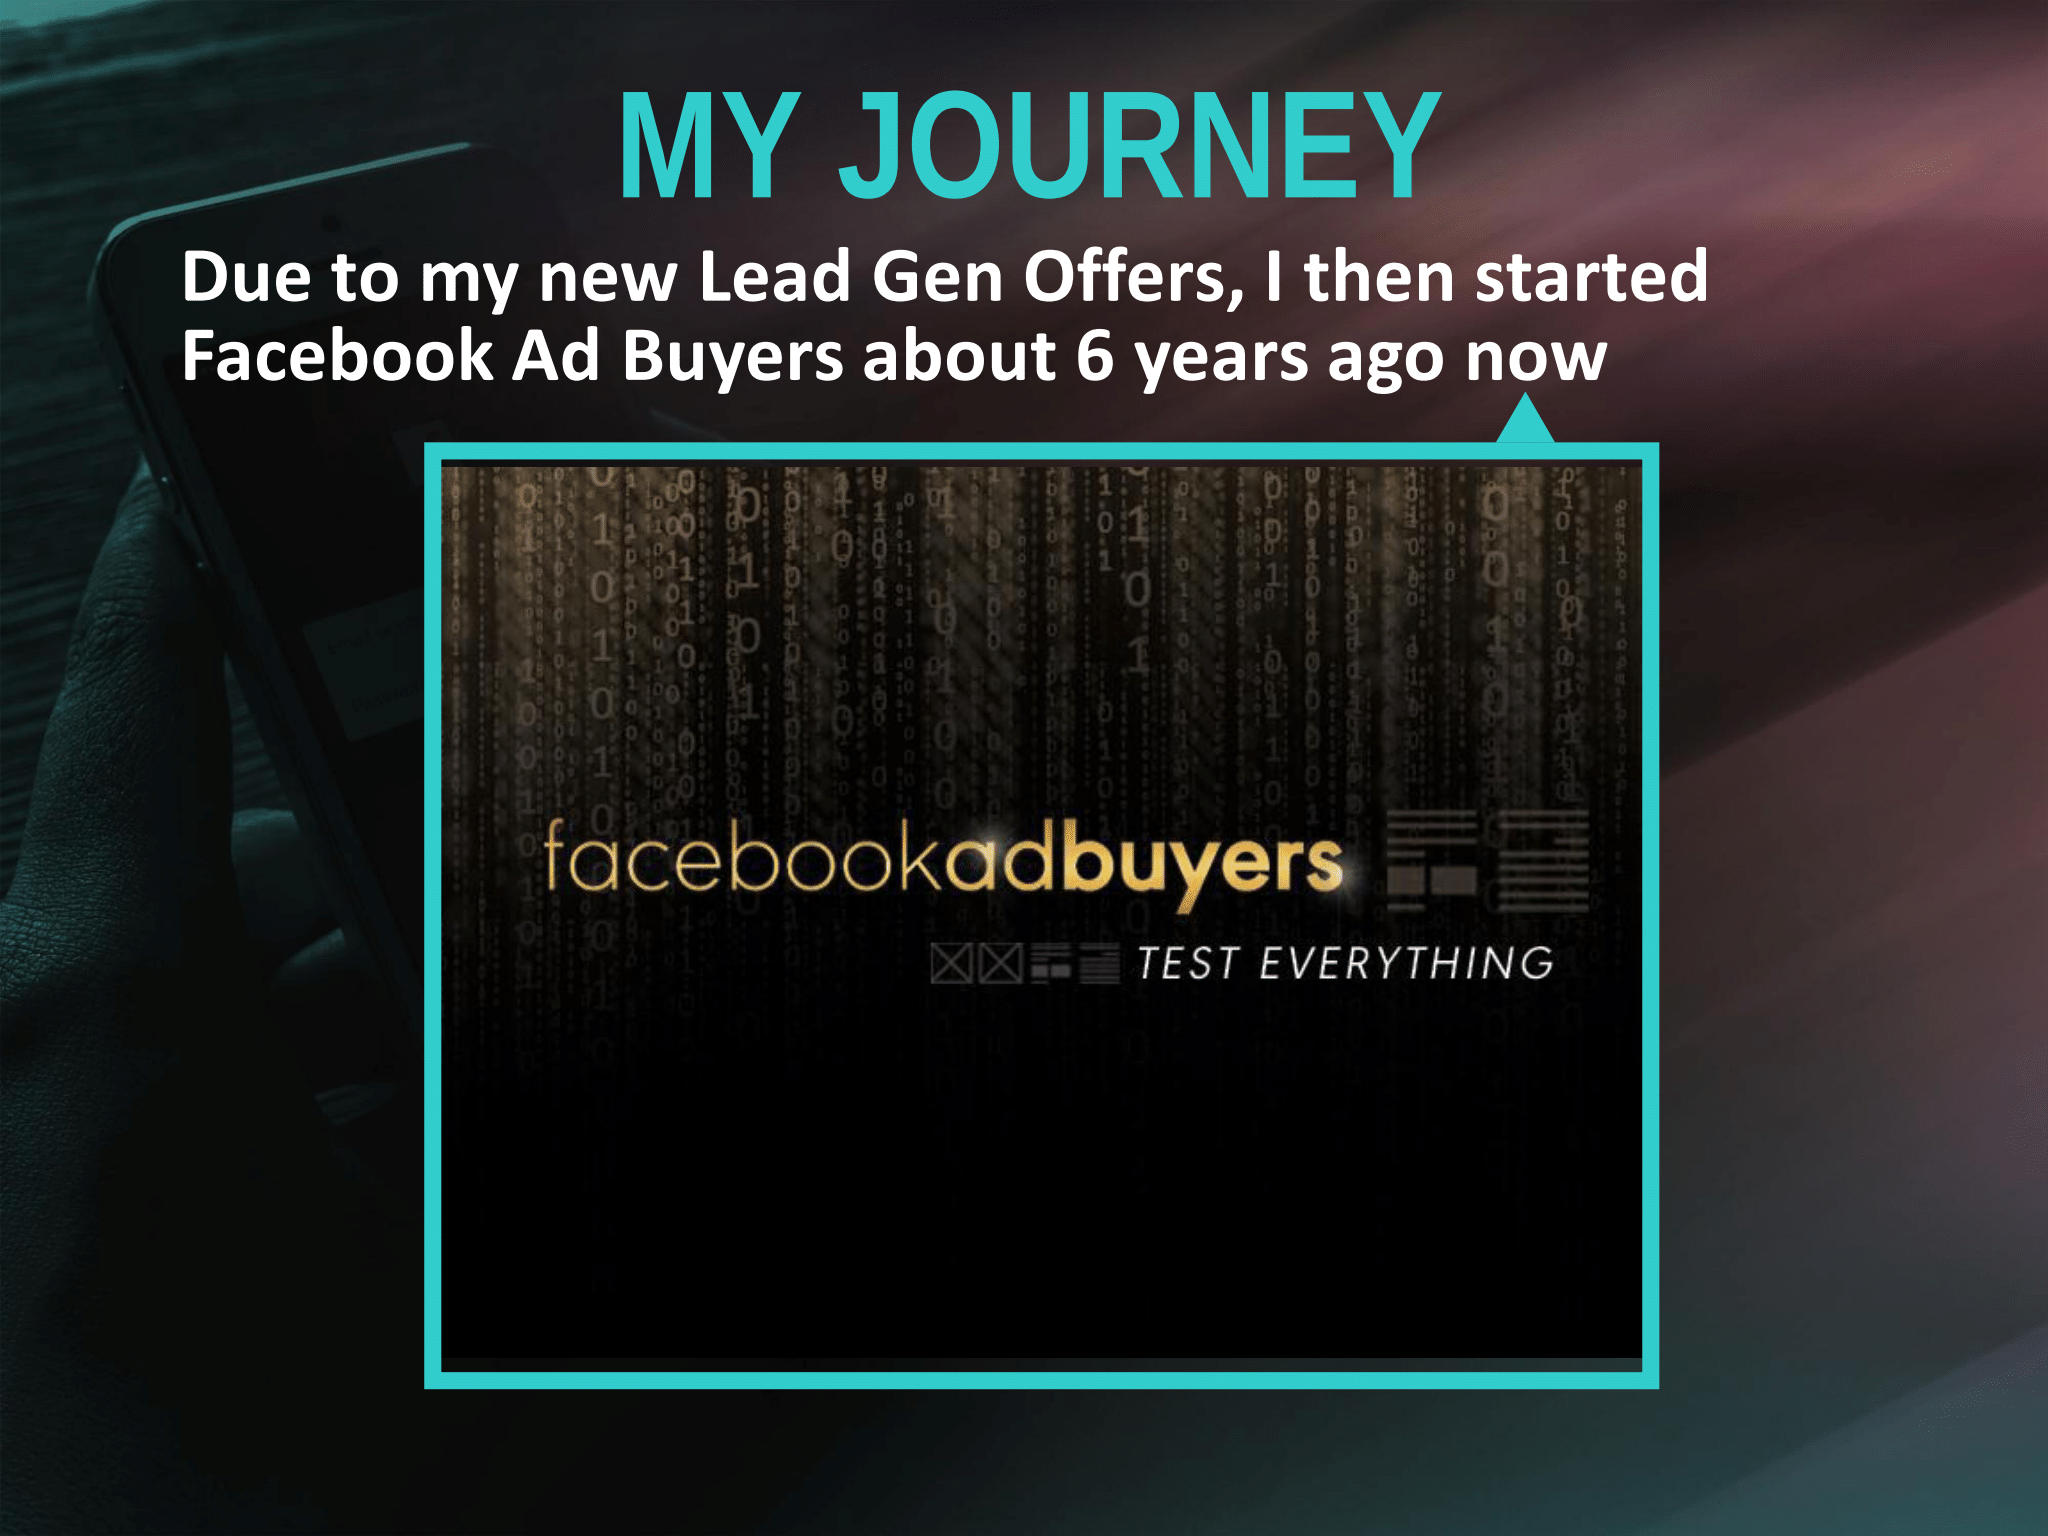 Tim Burd – Facebook Ad Buyers